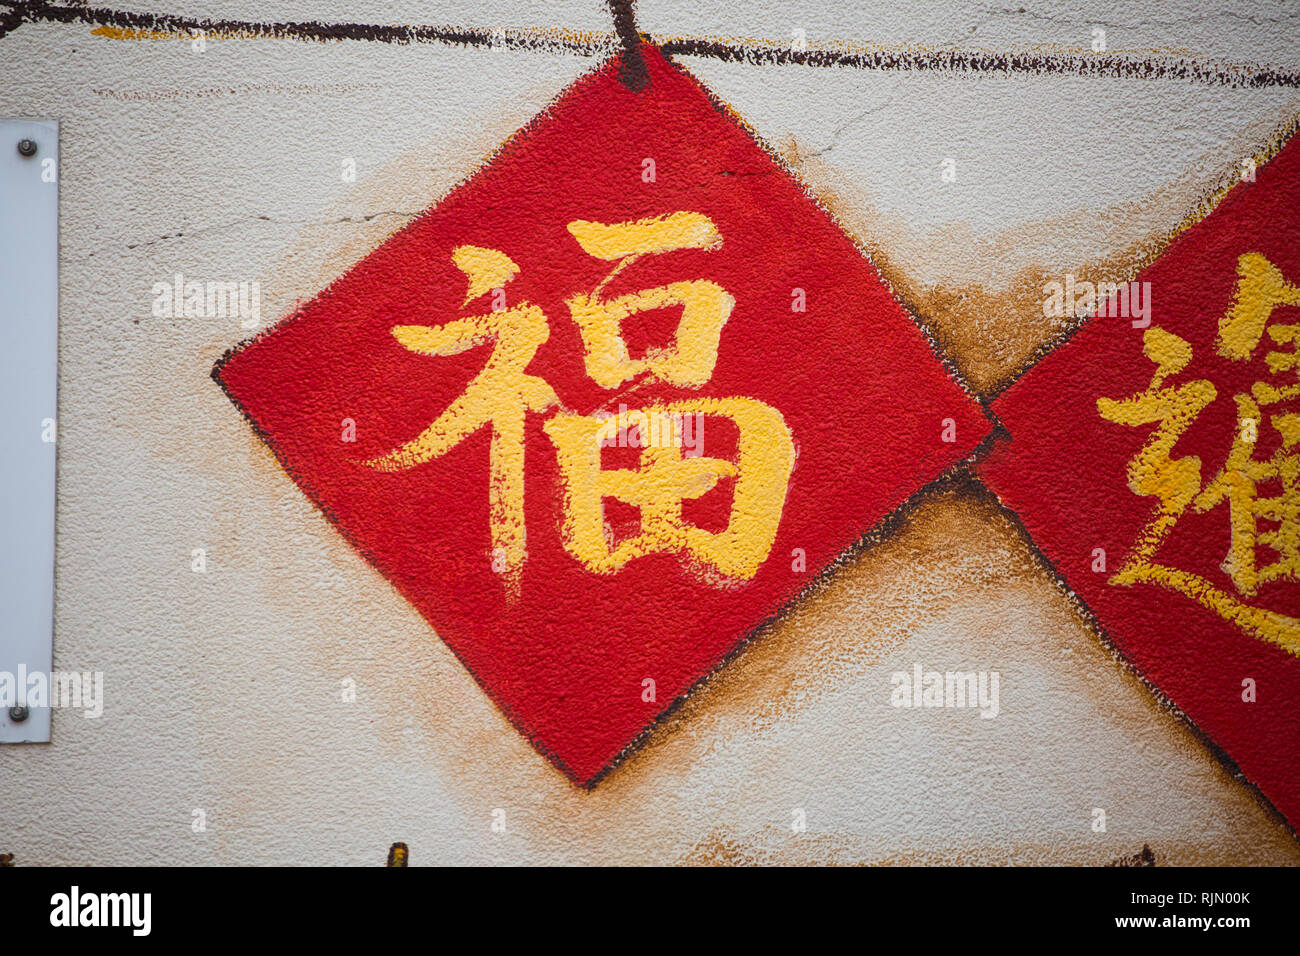 Chinese New Year decoration design with the Chinese character 福 (Fu) in it. A single character meanings of good fortune, happiness and luck. - Stock Image